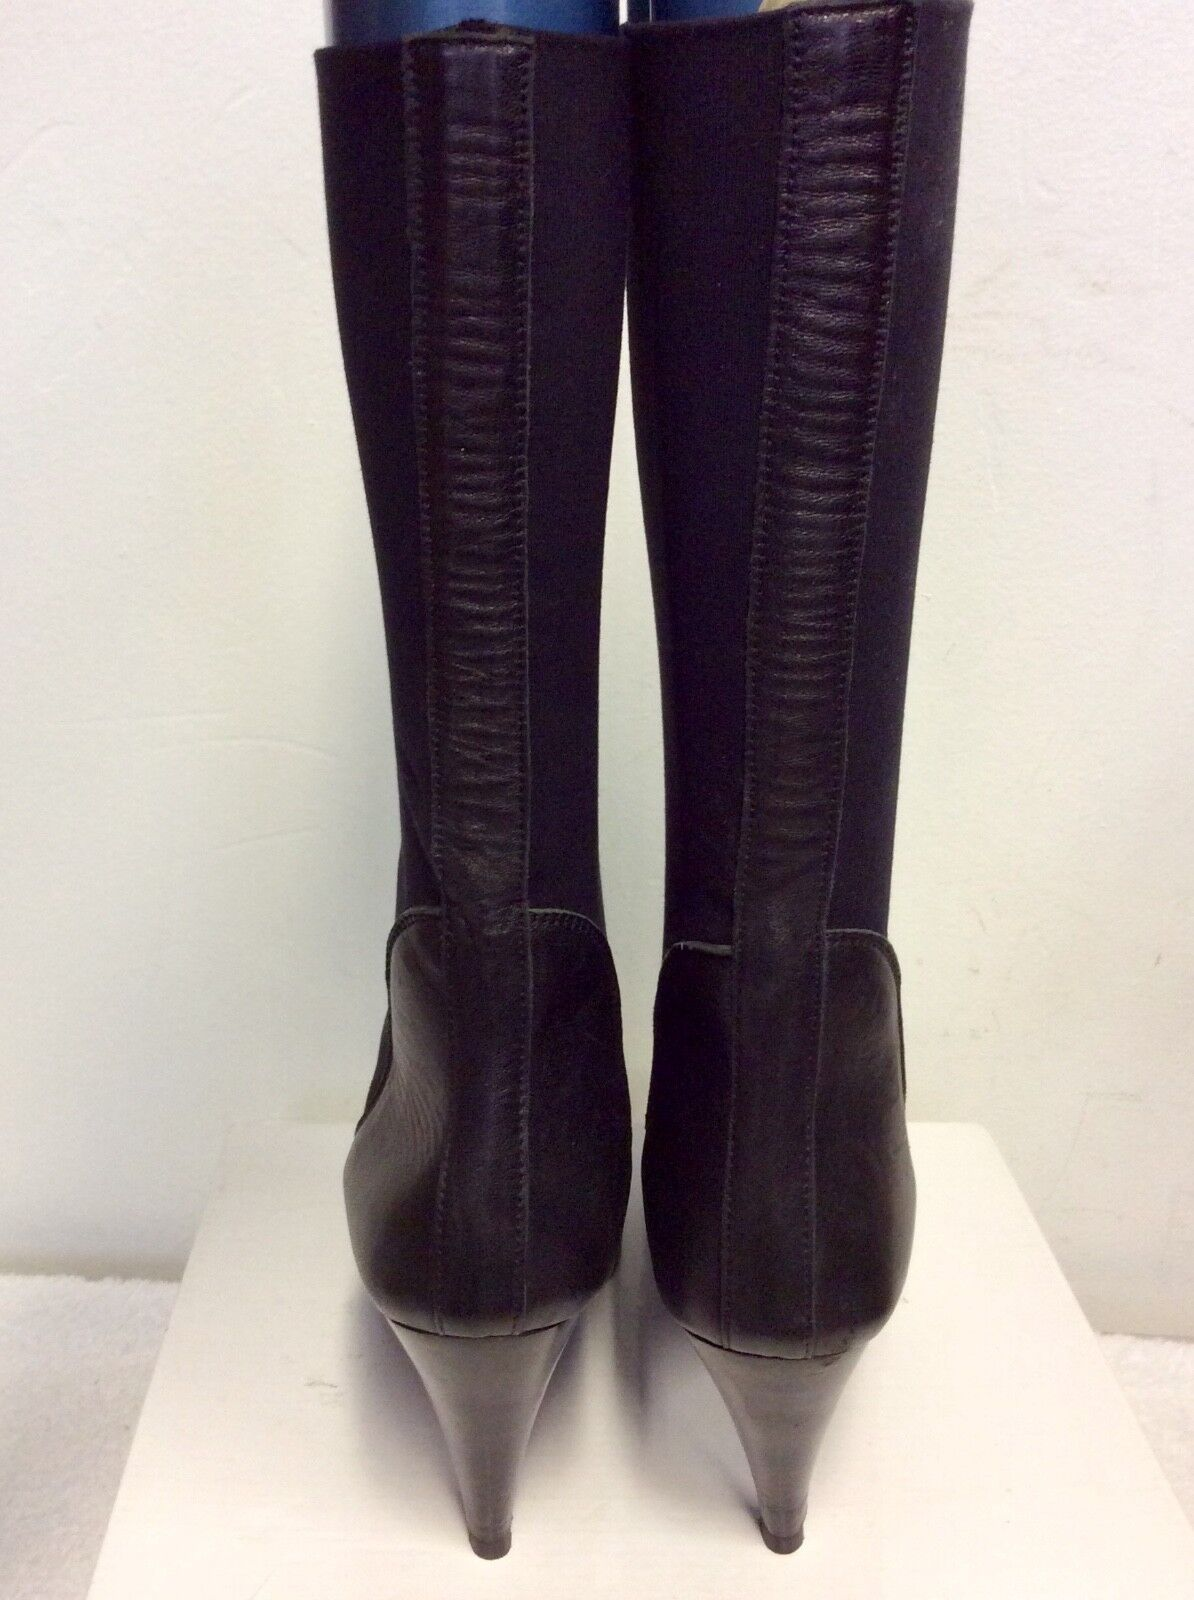 MARCCAIN LENGTH BLACK LEATHER & STRETCH FABRIC CALF LENGTH MARCCAIN  Stiefel SIZE 6/39 9041d6